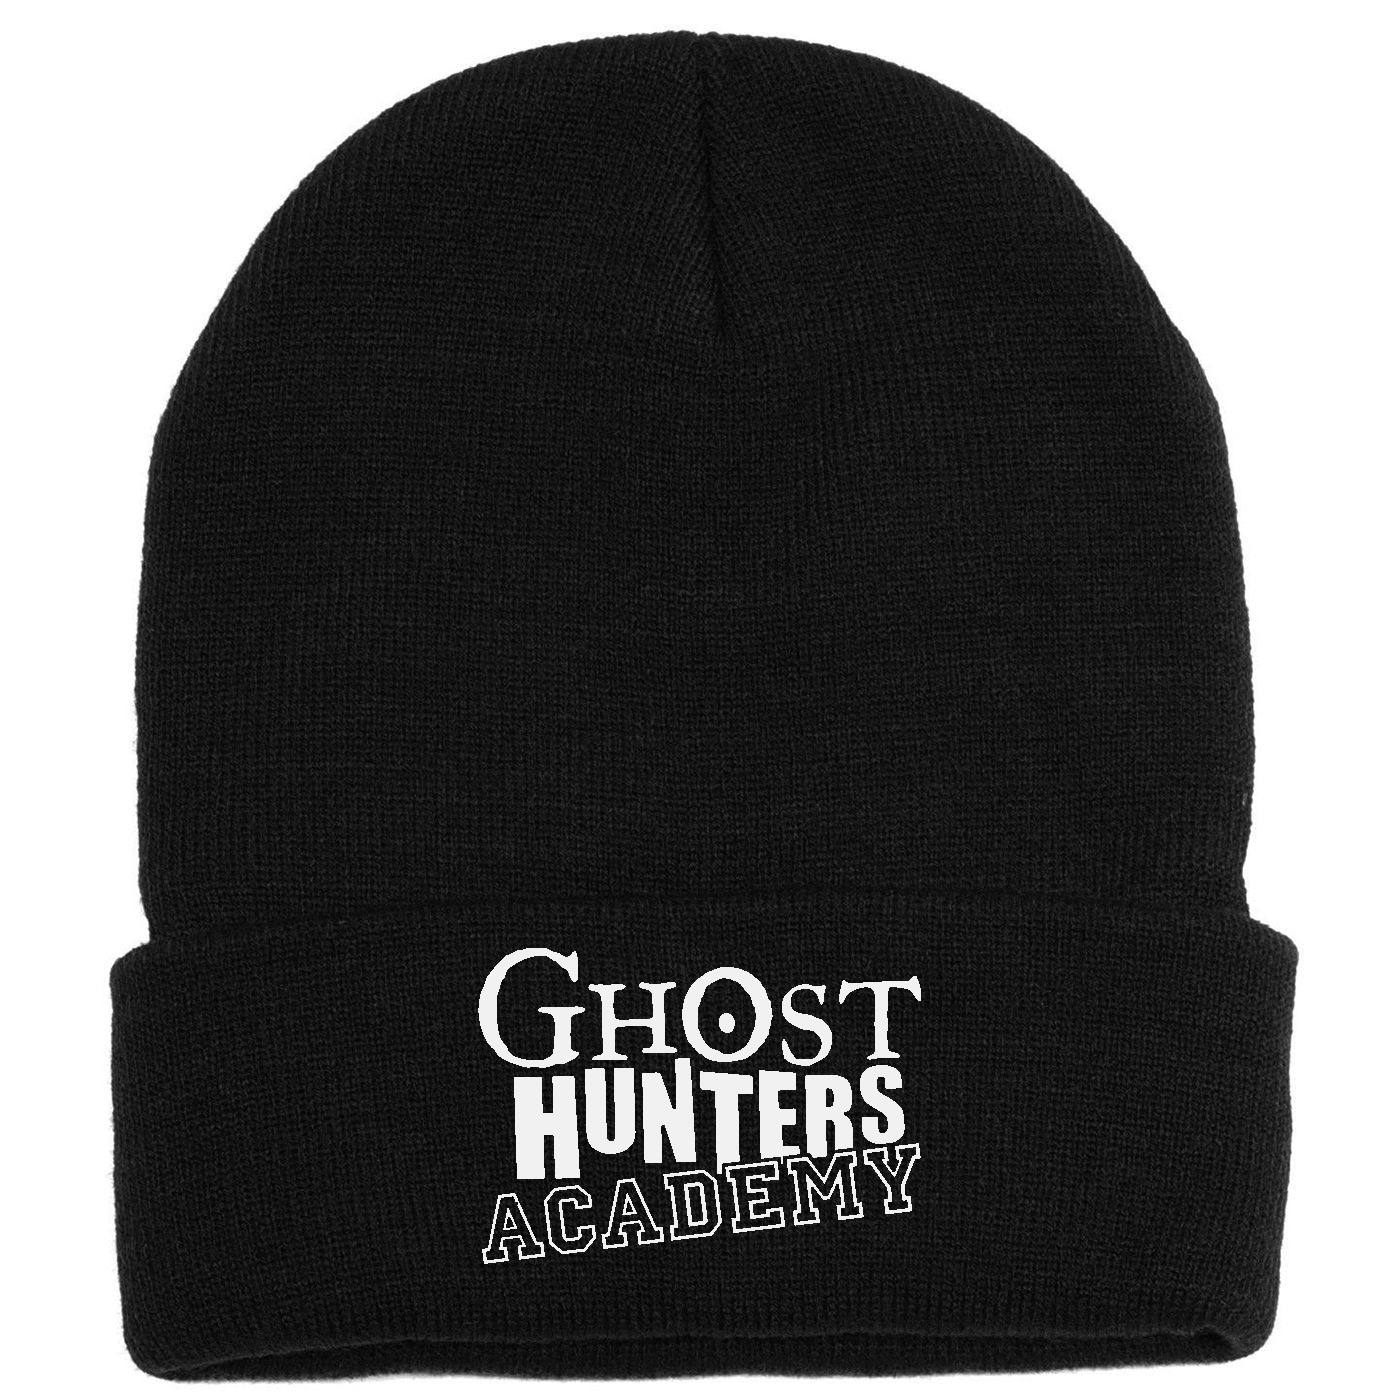 Ghost Hunters Academy Embroidered Knit Beanie